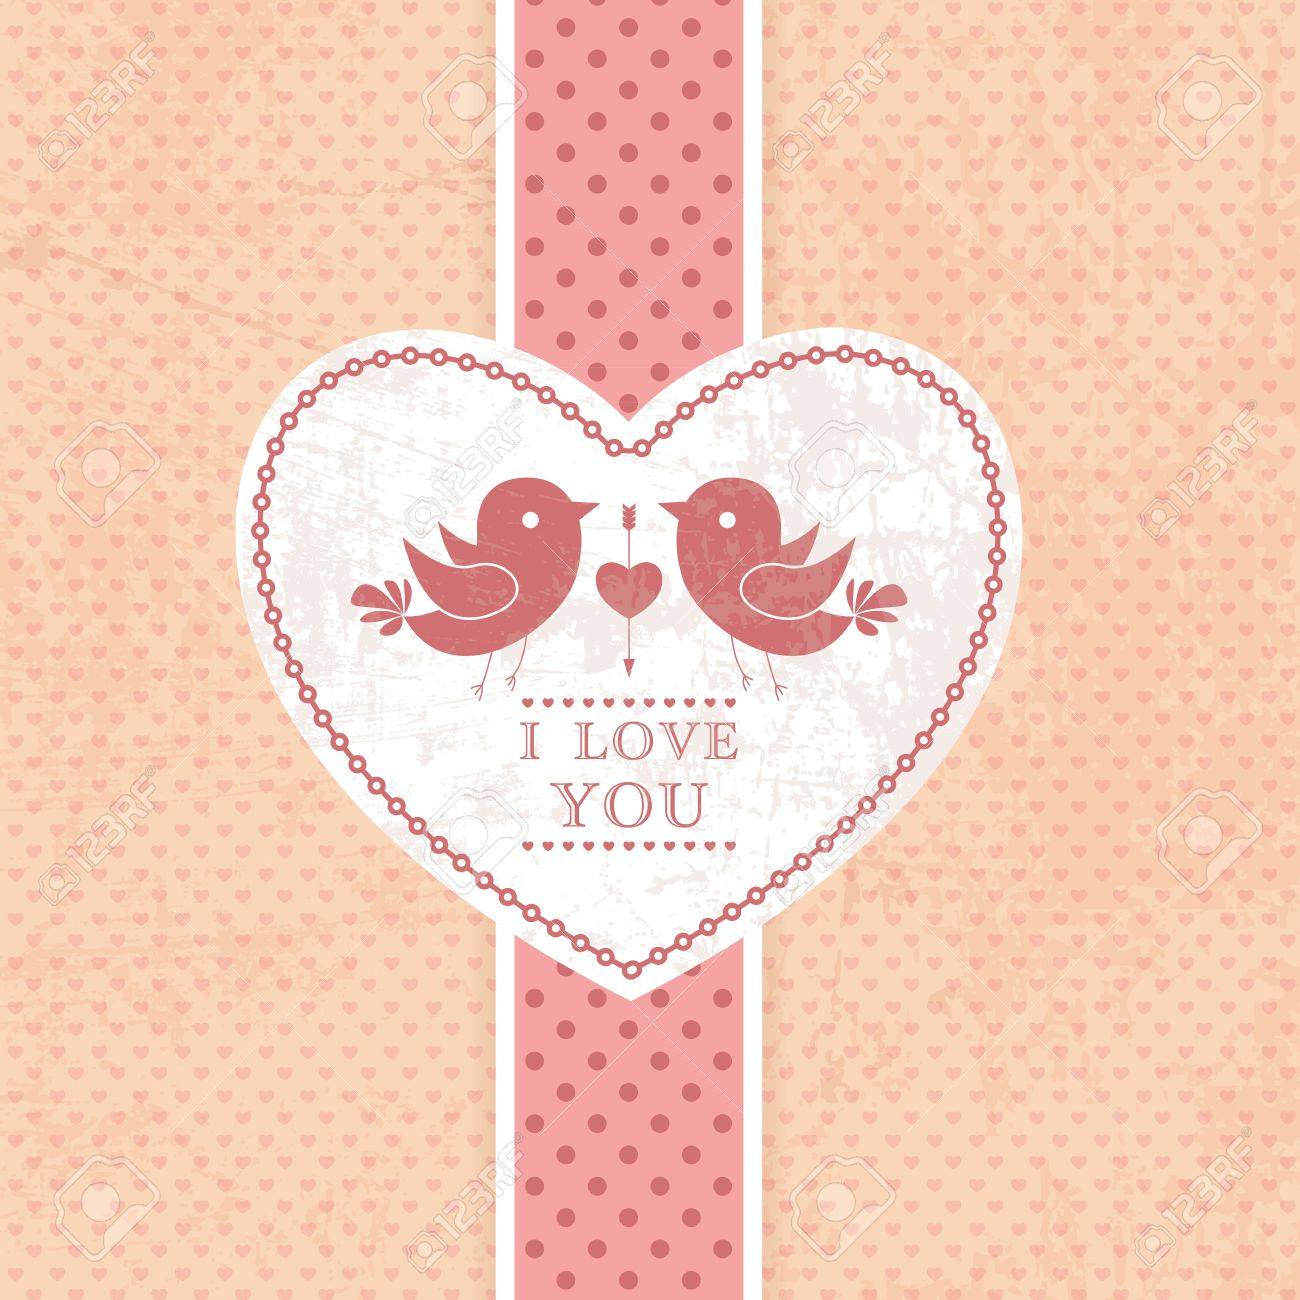 How to scrapbook a wedding invitation - Wedding Invitation Card Scrapbook Background I Love You Perfect As Invitation Or Announcement